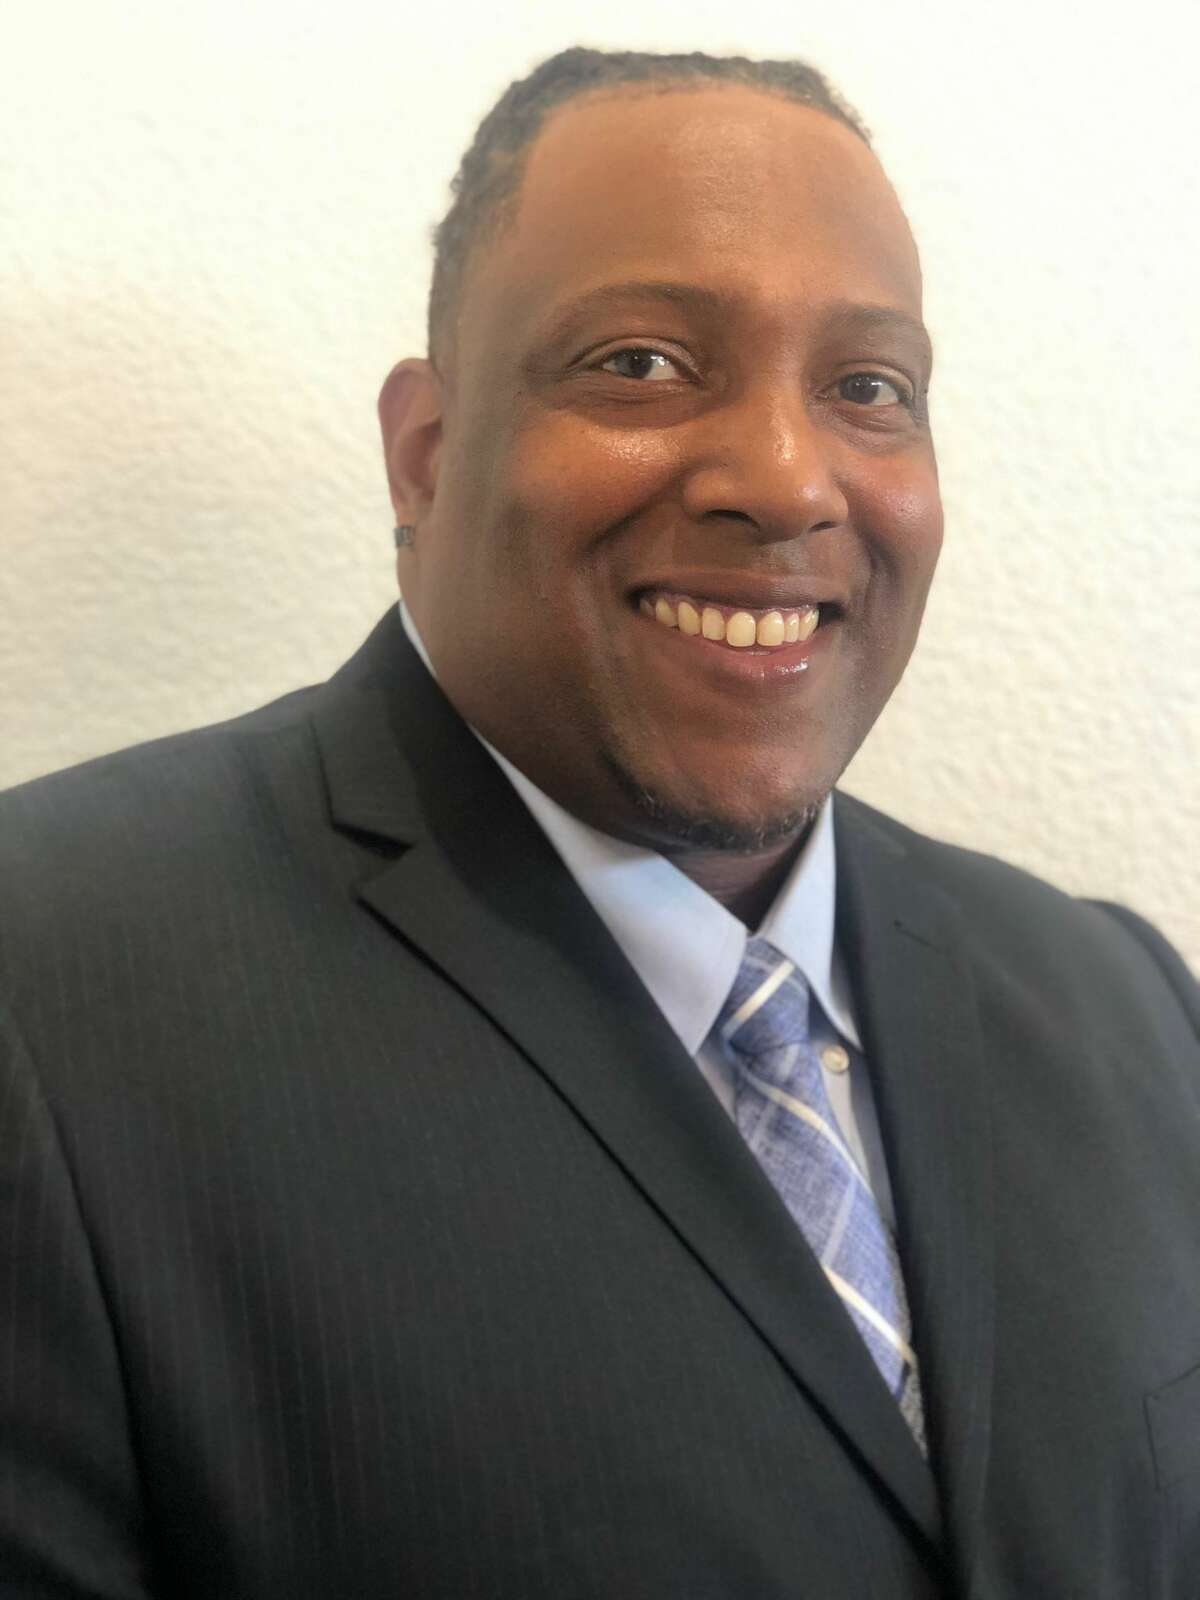 John Norman, a former Lee High football star and owner of Norman Elite athletic training, has filed for the Midland City Council District 2 seat being vacated by John Love.